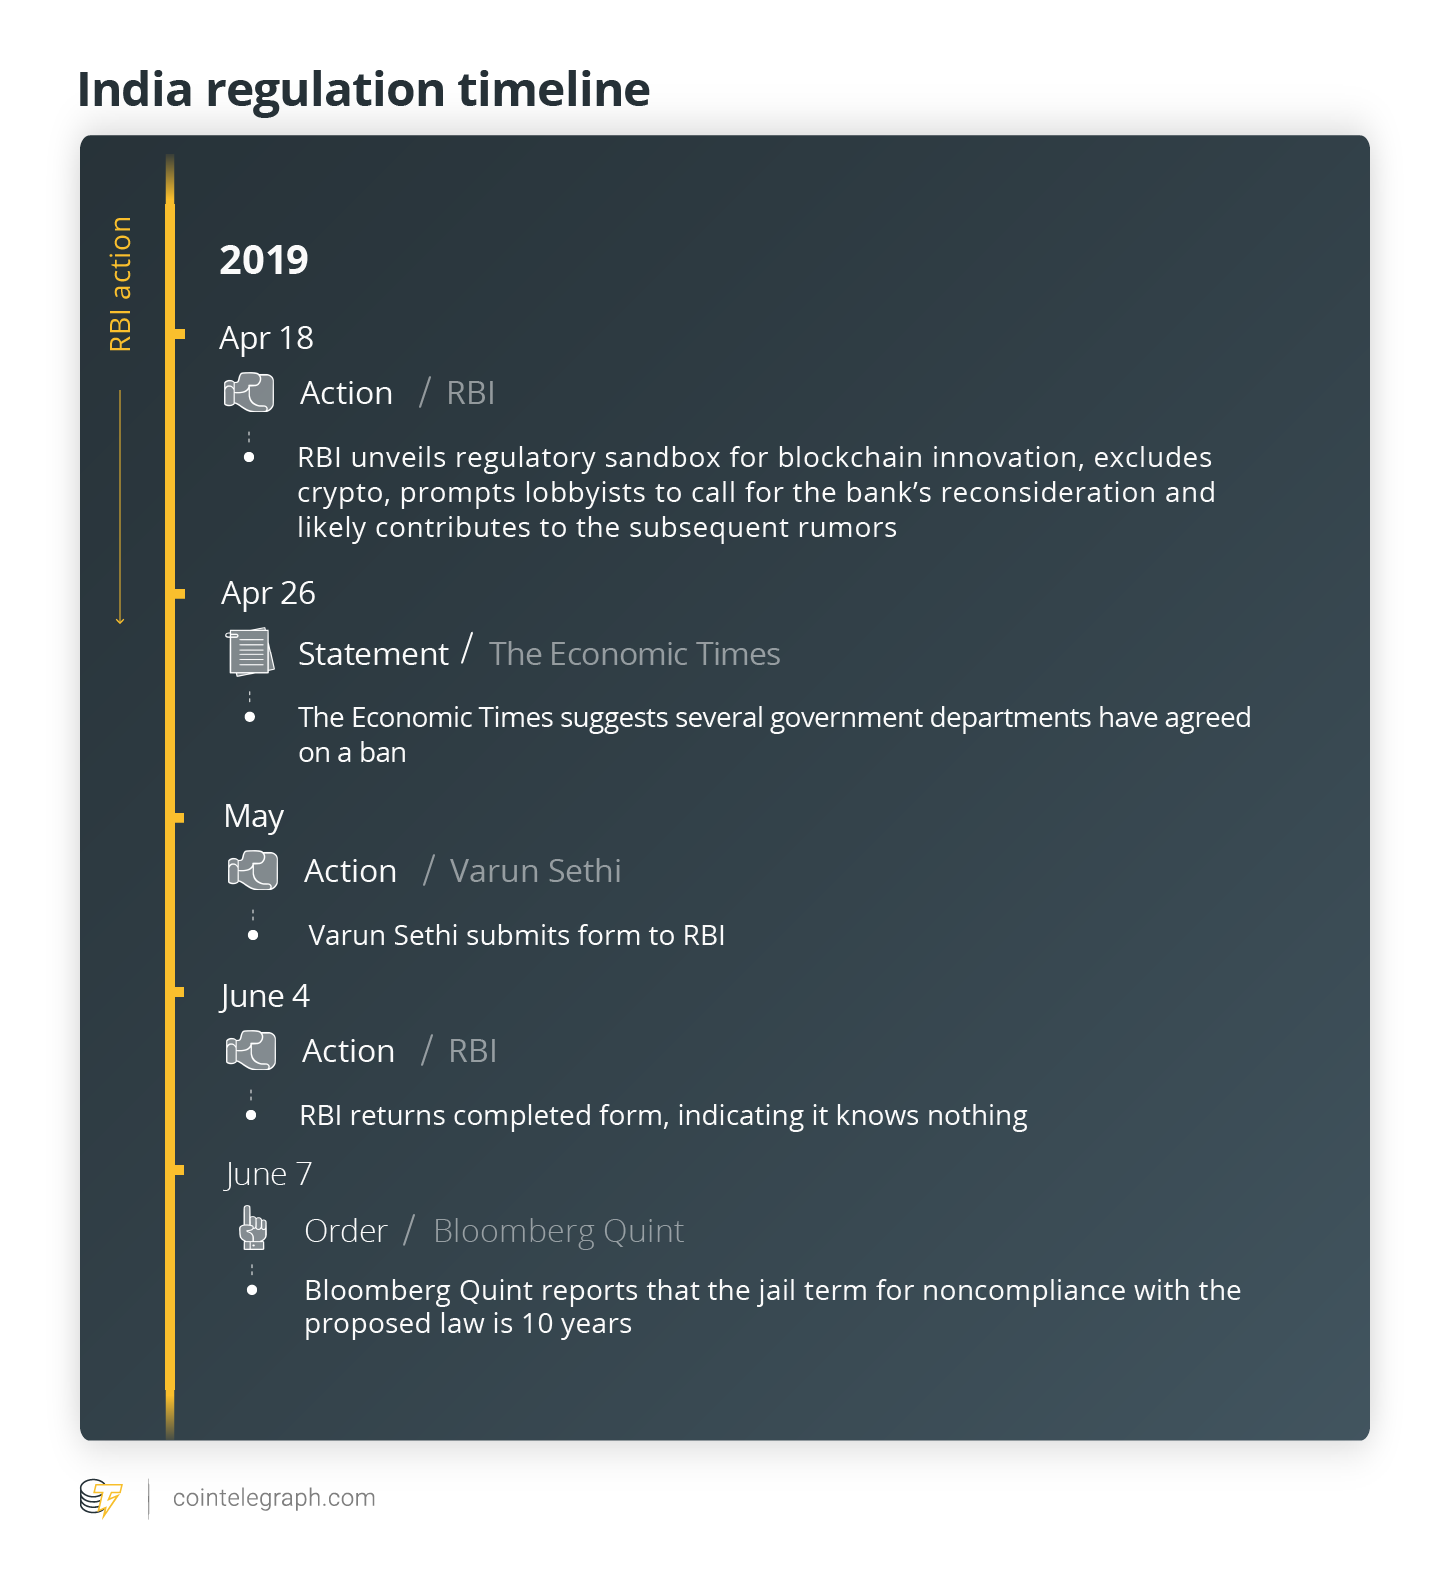 India regulation timeline